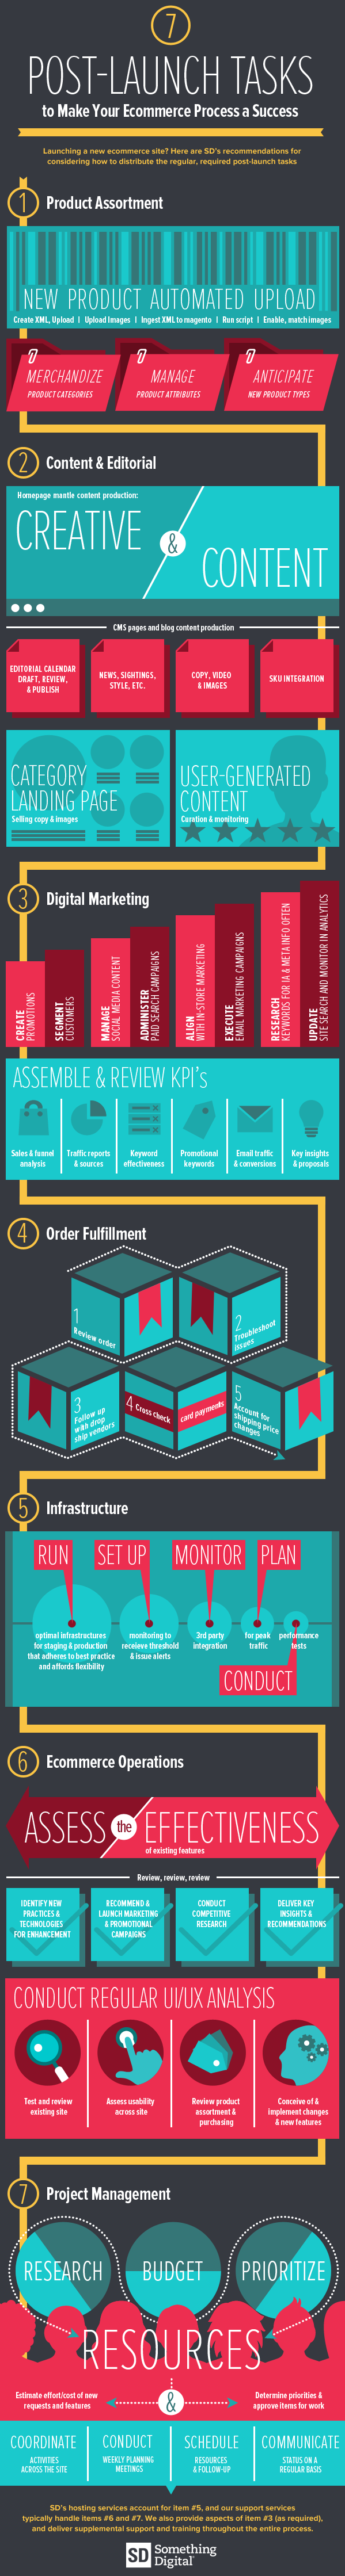 Infographic Post Launch Tasks